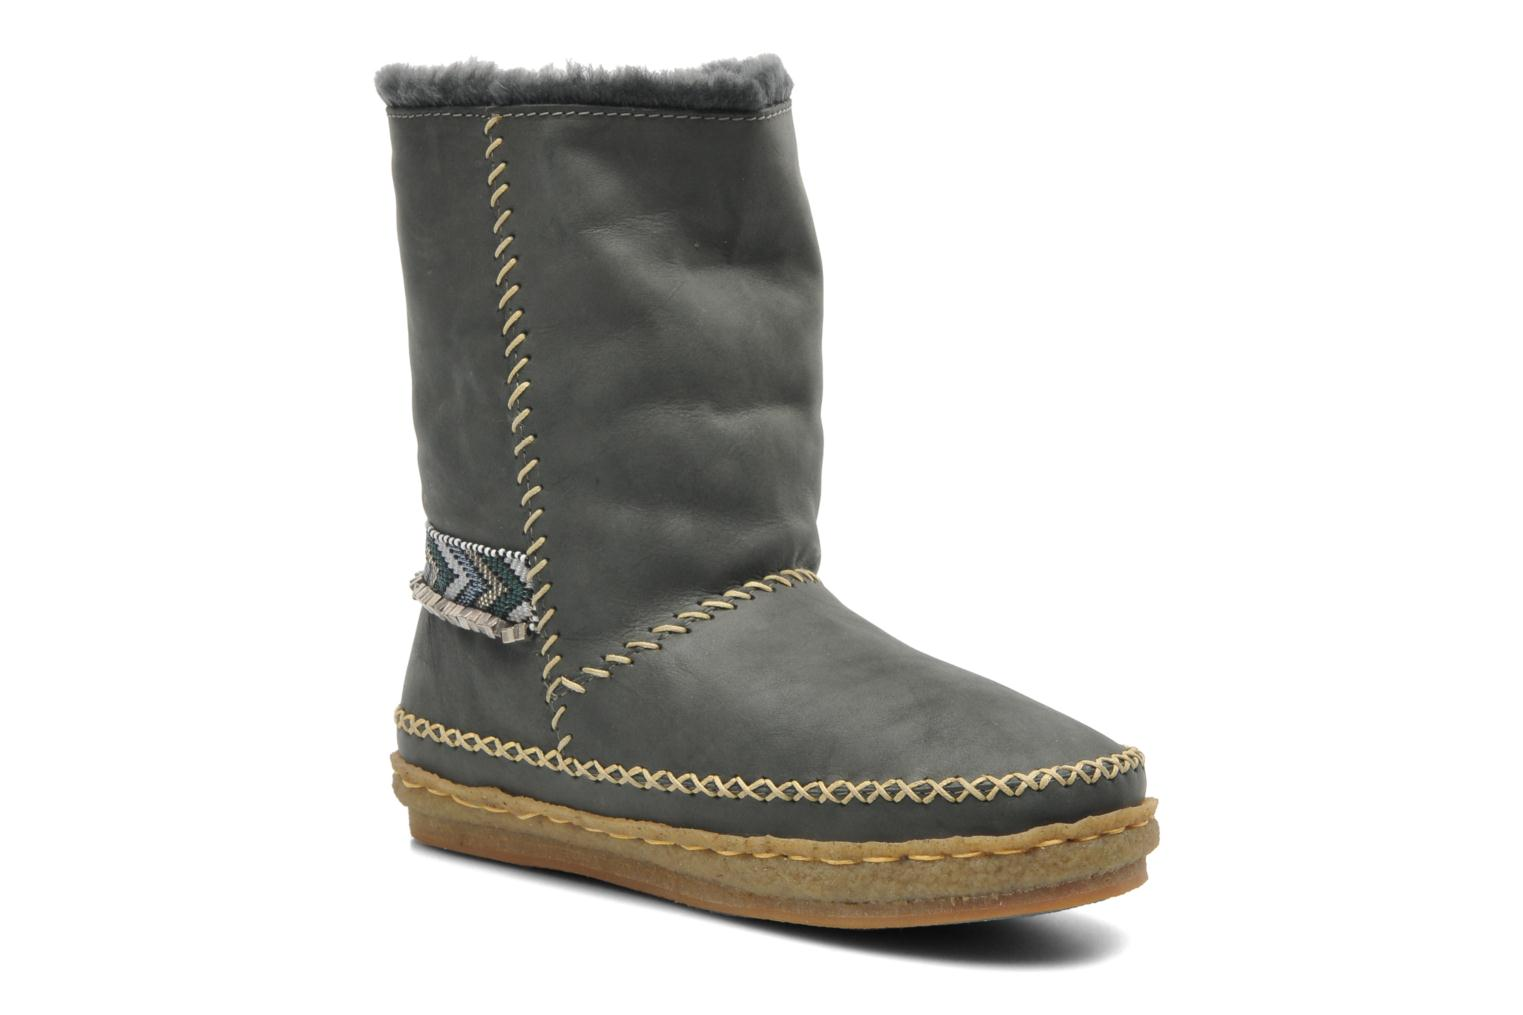 Bottines et boots Laidback London Naira Gris vue détail/paire